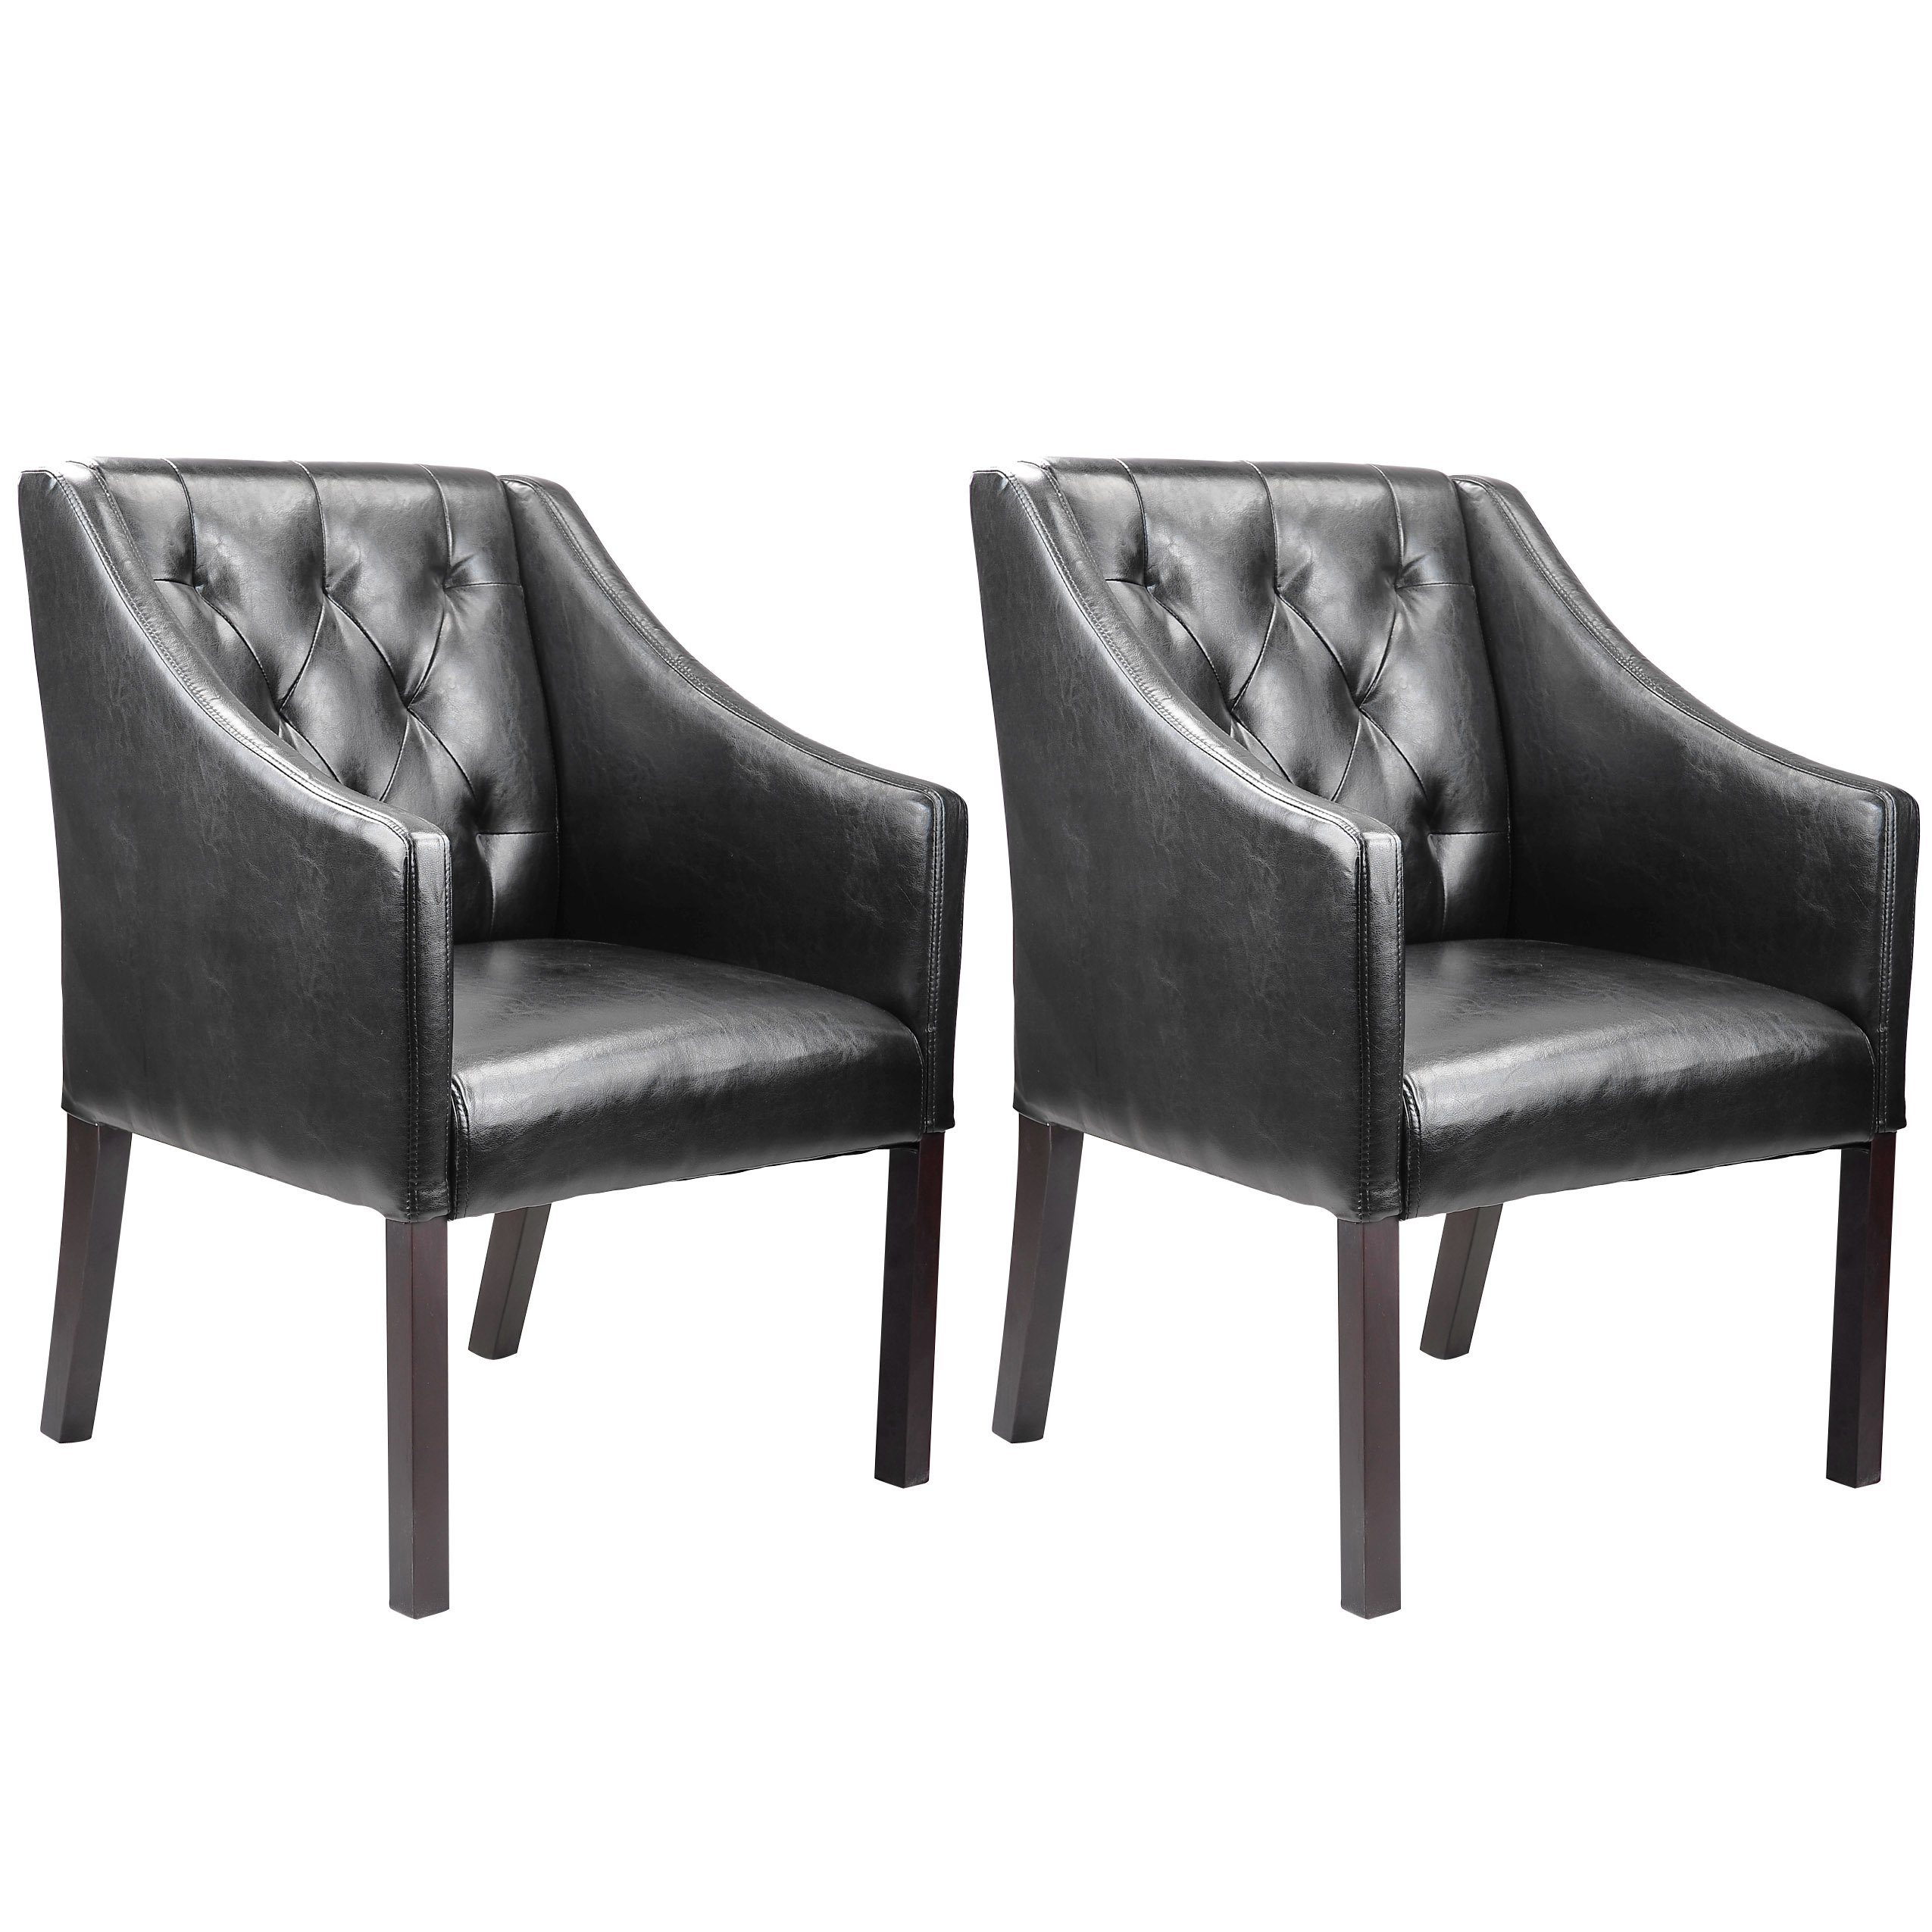 Sears Accent Chairs Corliving Antonio Accent Club Chair In Bonded Leather Set Of 2